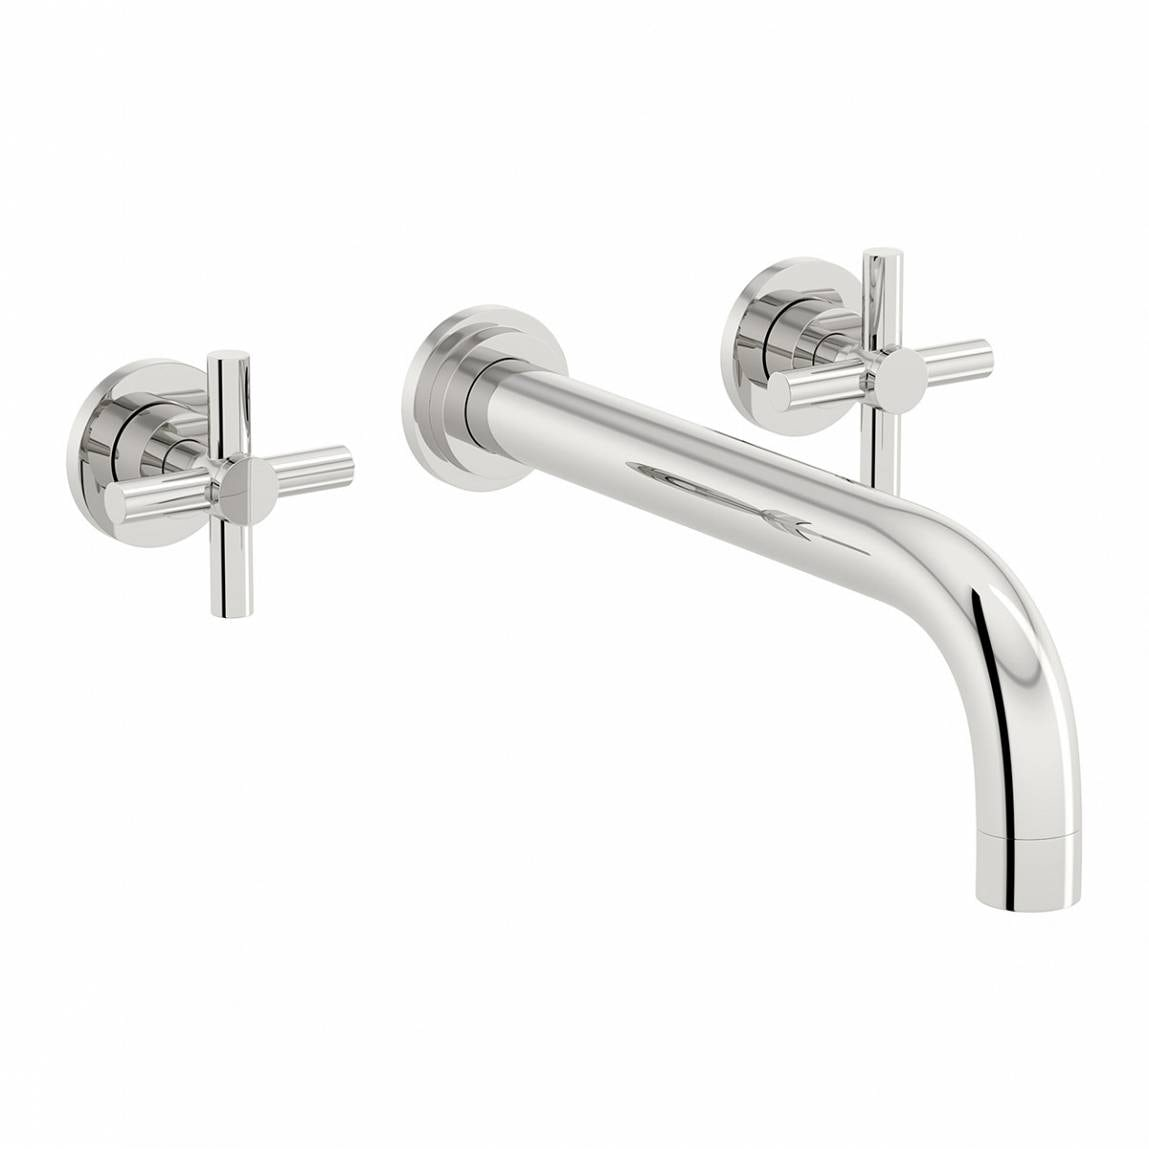 alexa wall mounted basin and bath mixer tap pack. Black Bedroom Furniture Sets. Home Design Ideas